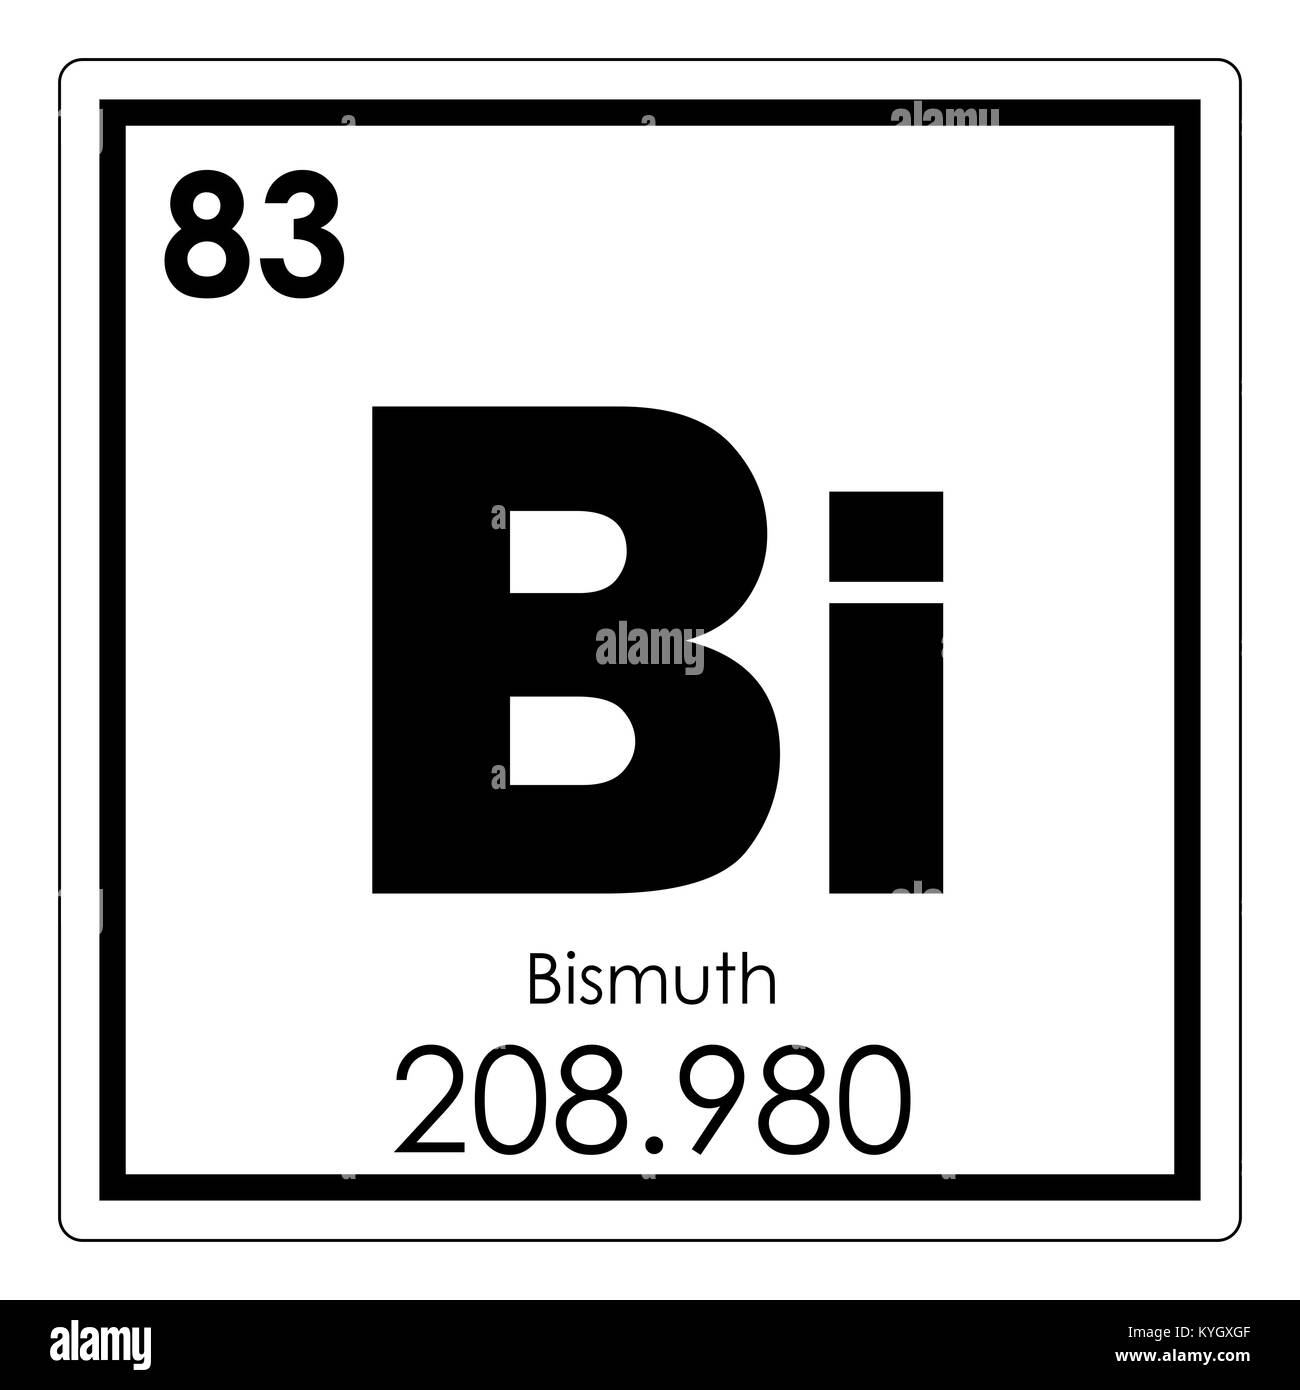 Bismuth Chemical Element Periodic Table Science Symbol Stock